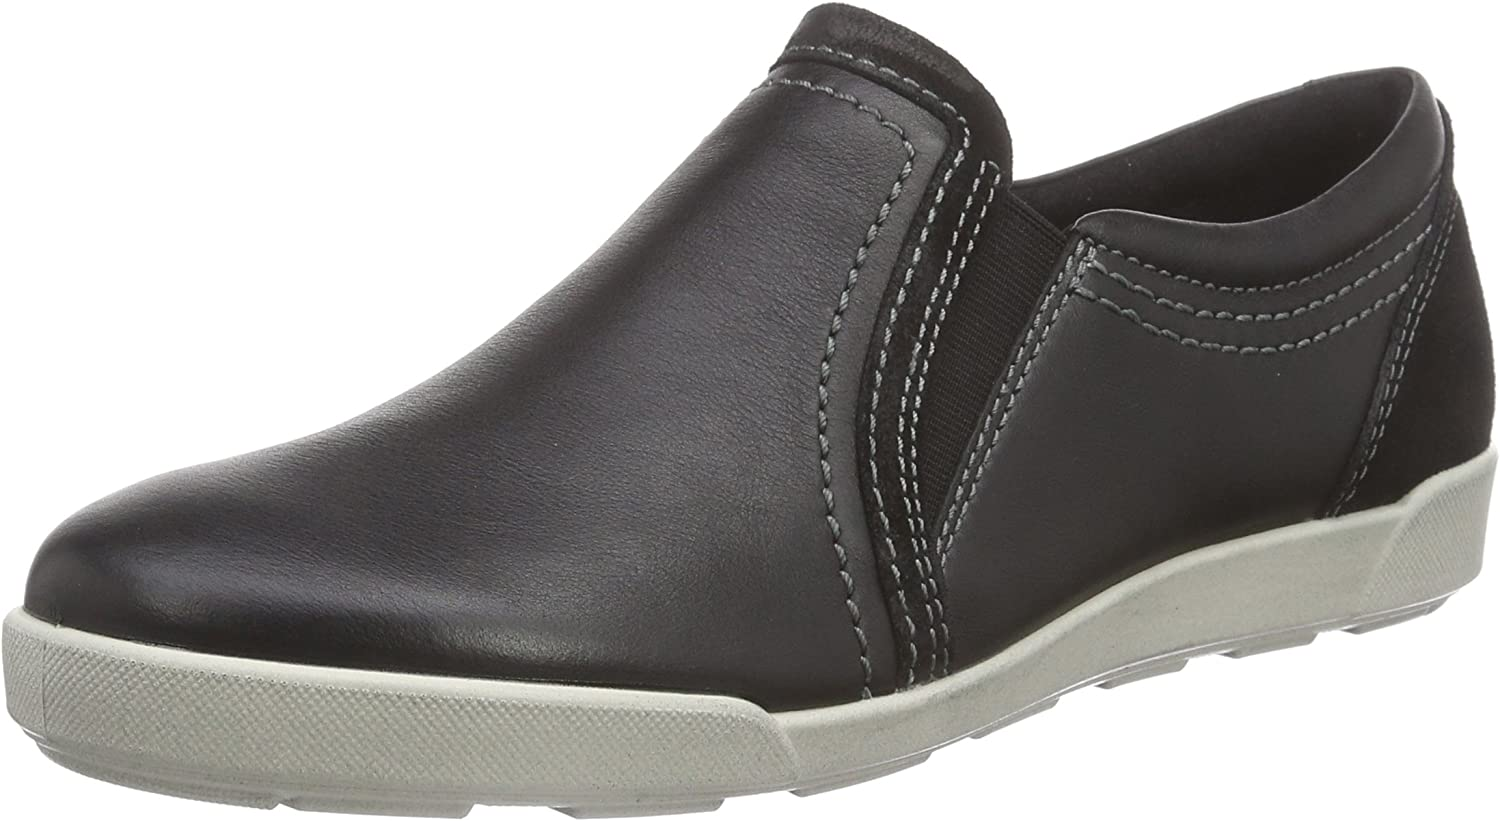 ECCO shoes Women's Crisp II Slip on Casual